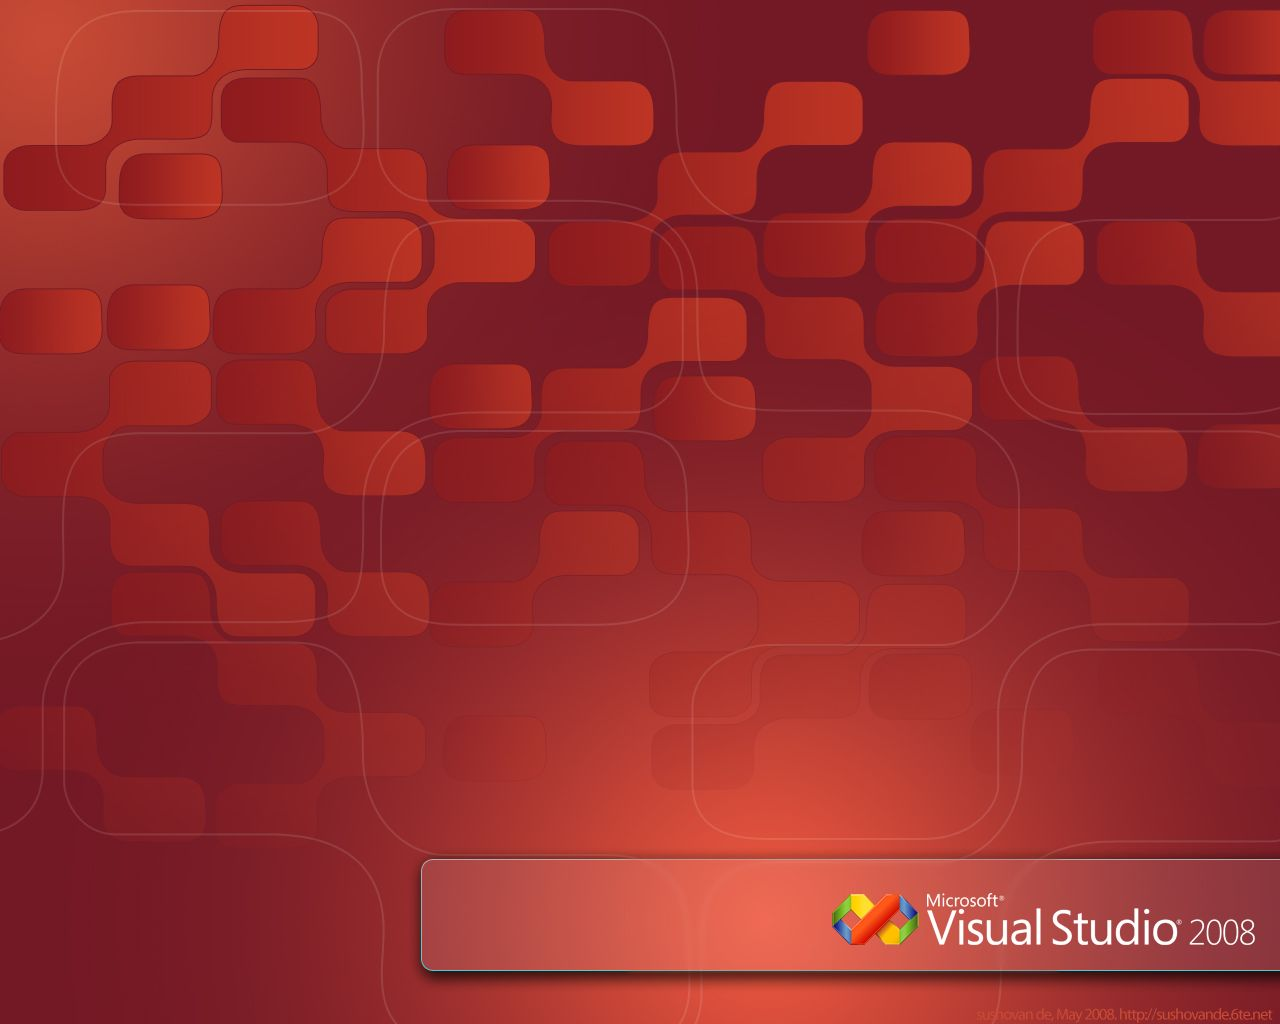 Visual Studio 2008 Wallpaper